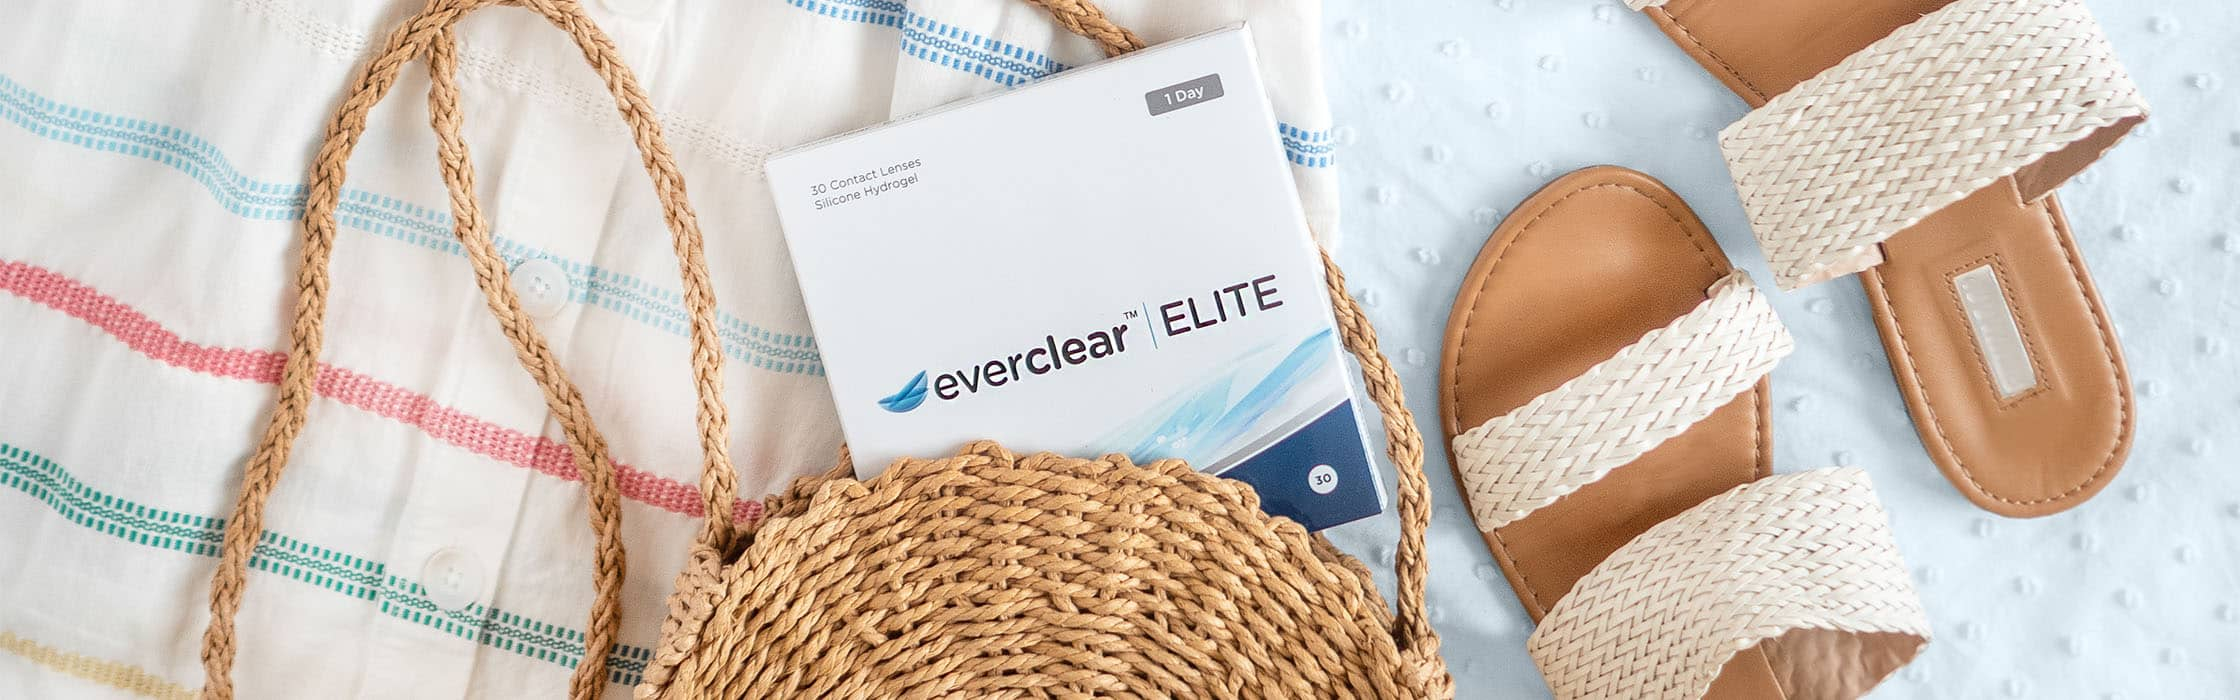 everclear ELITE pack of contact lenses in straw bag and sandals